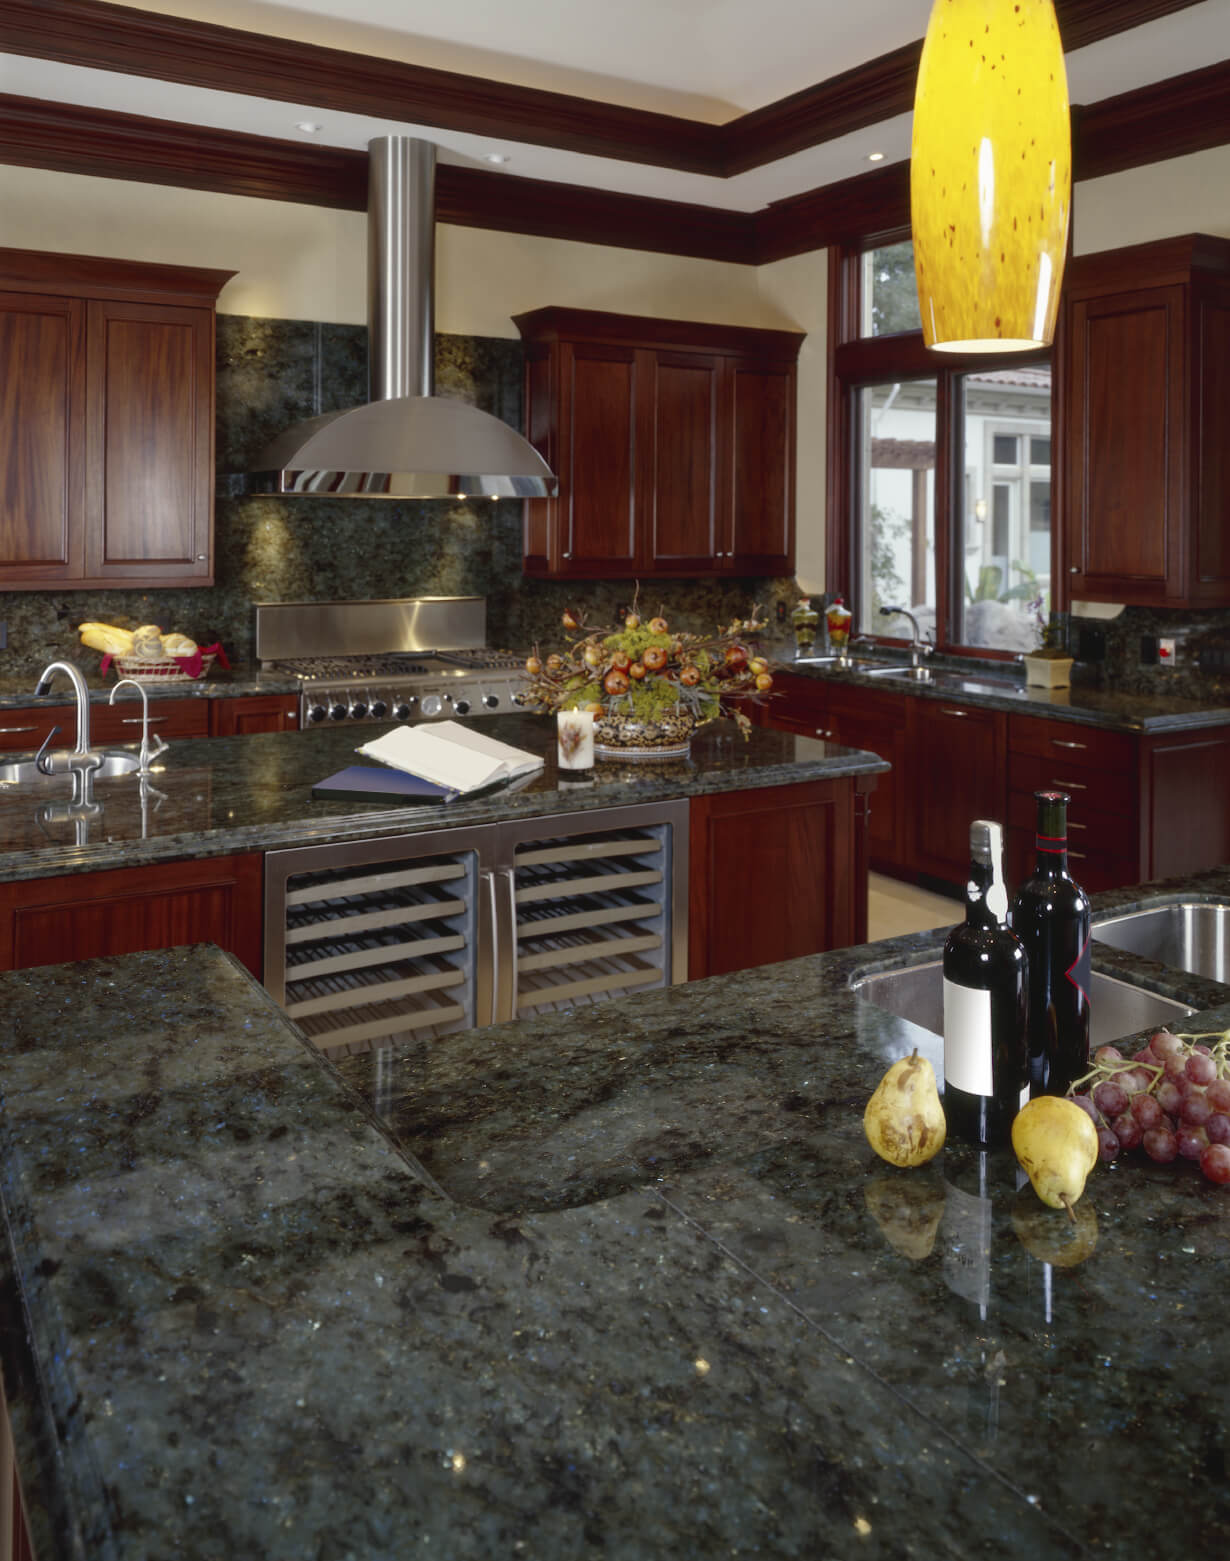 Rich dark green marble countertops and dark cherry wood fill this luxurious kitchen featuring brushed aluminum appliances and island with built-in wine cooler.